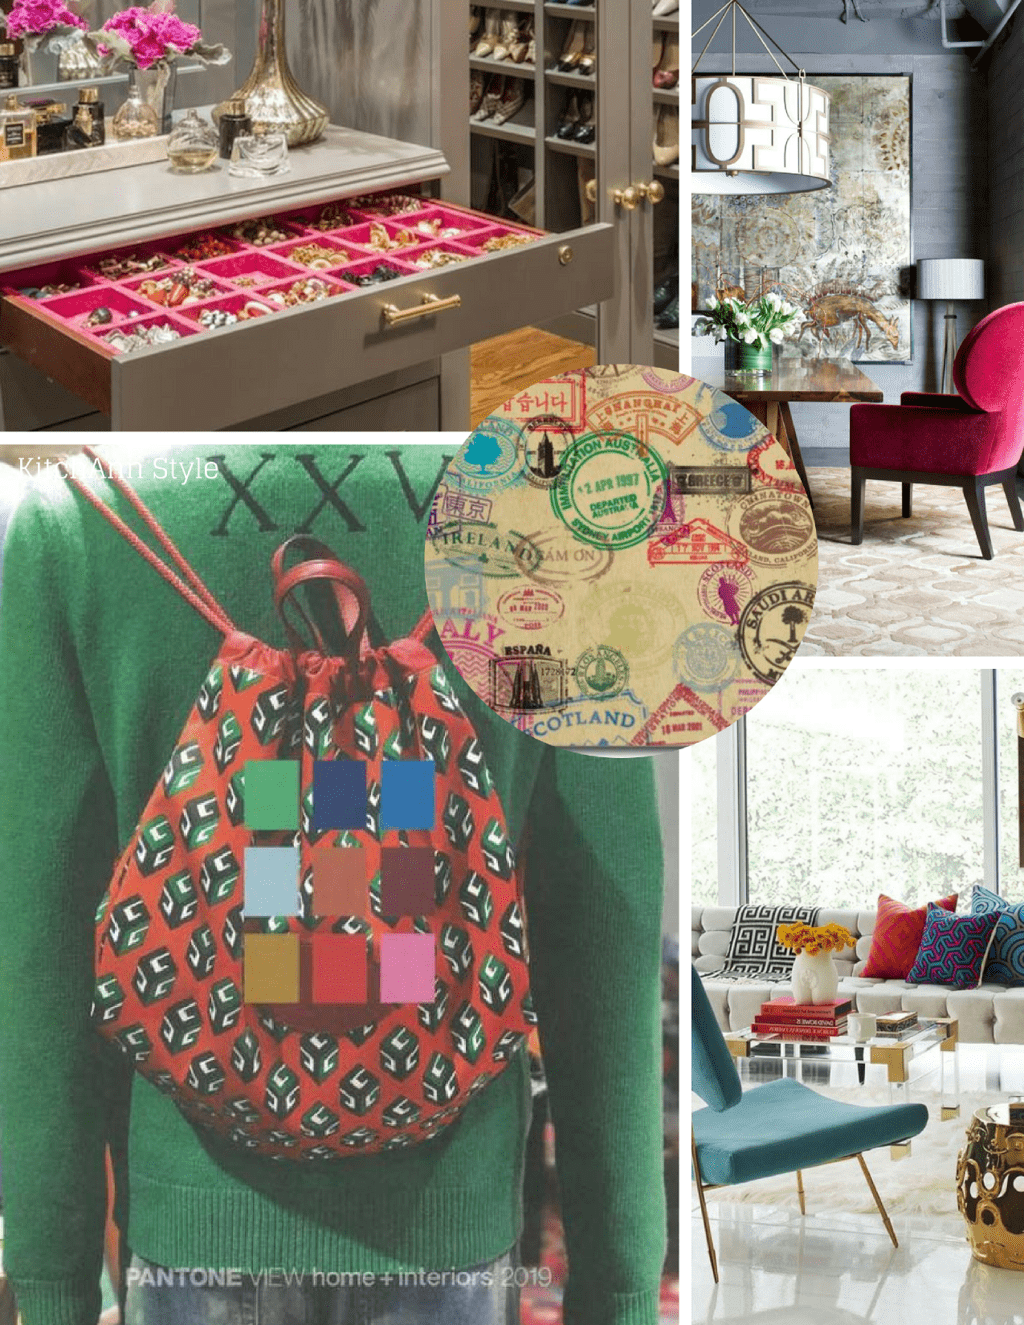 Pantoneview Home + Interiors 2019 Meanderings